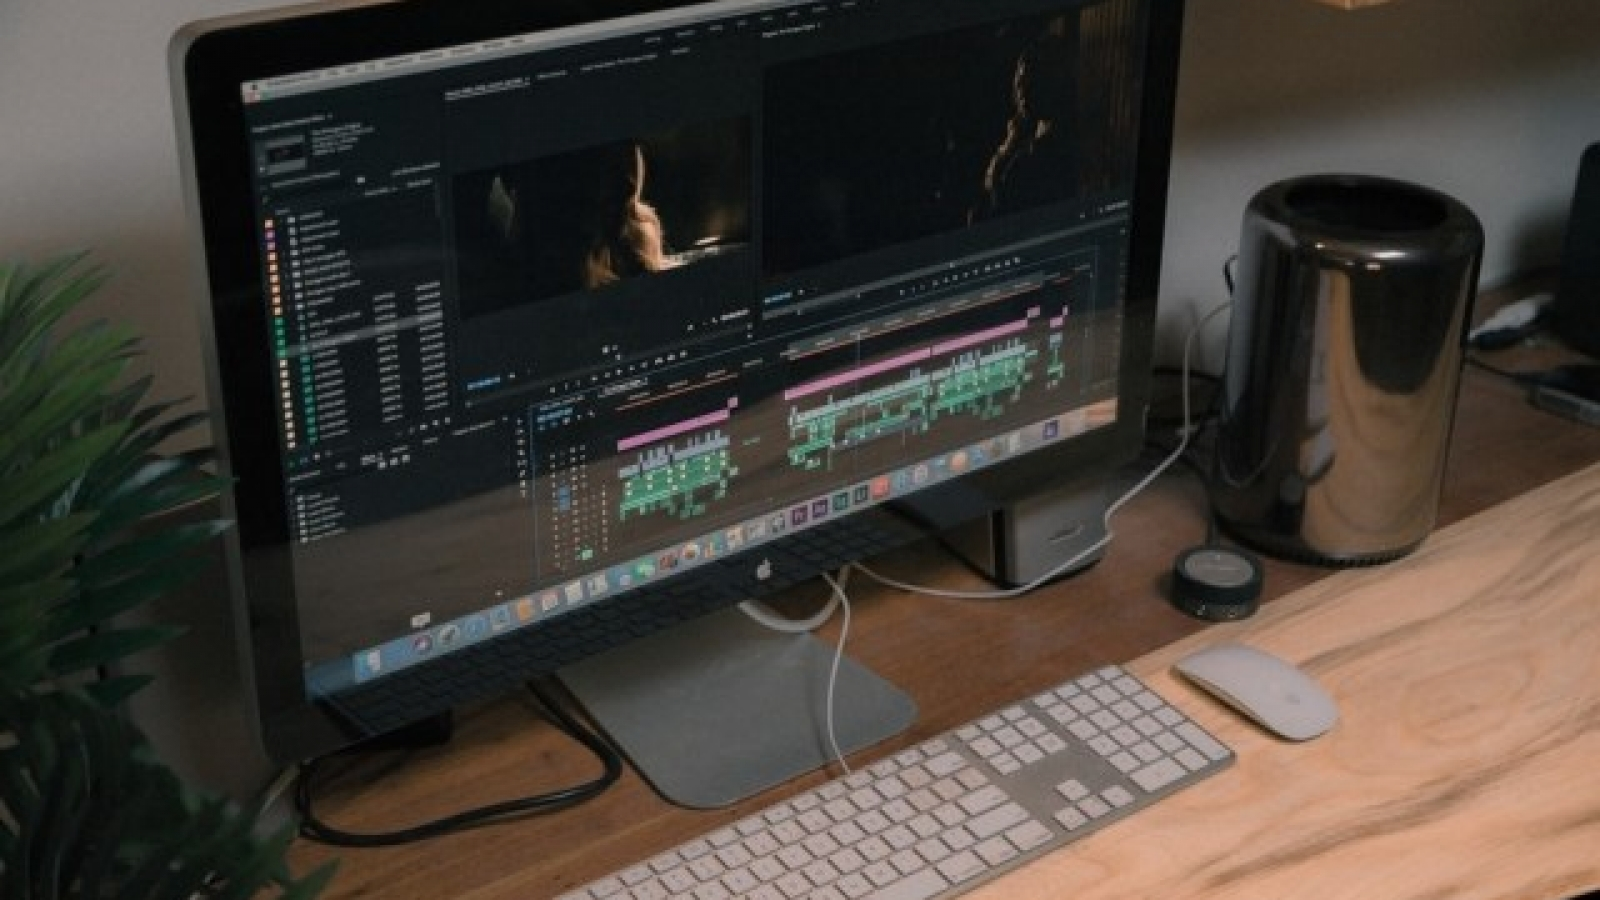 How to edit video to avoid copyright